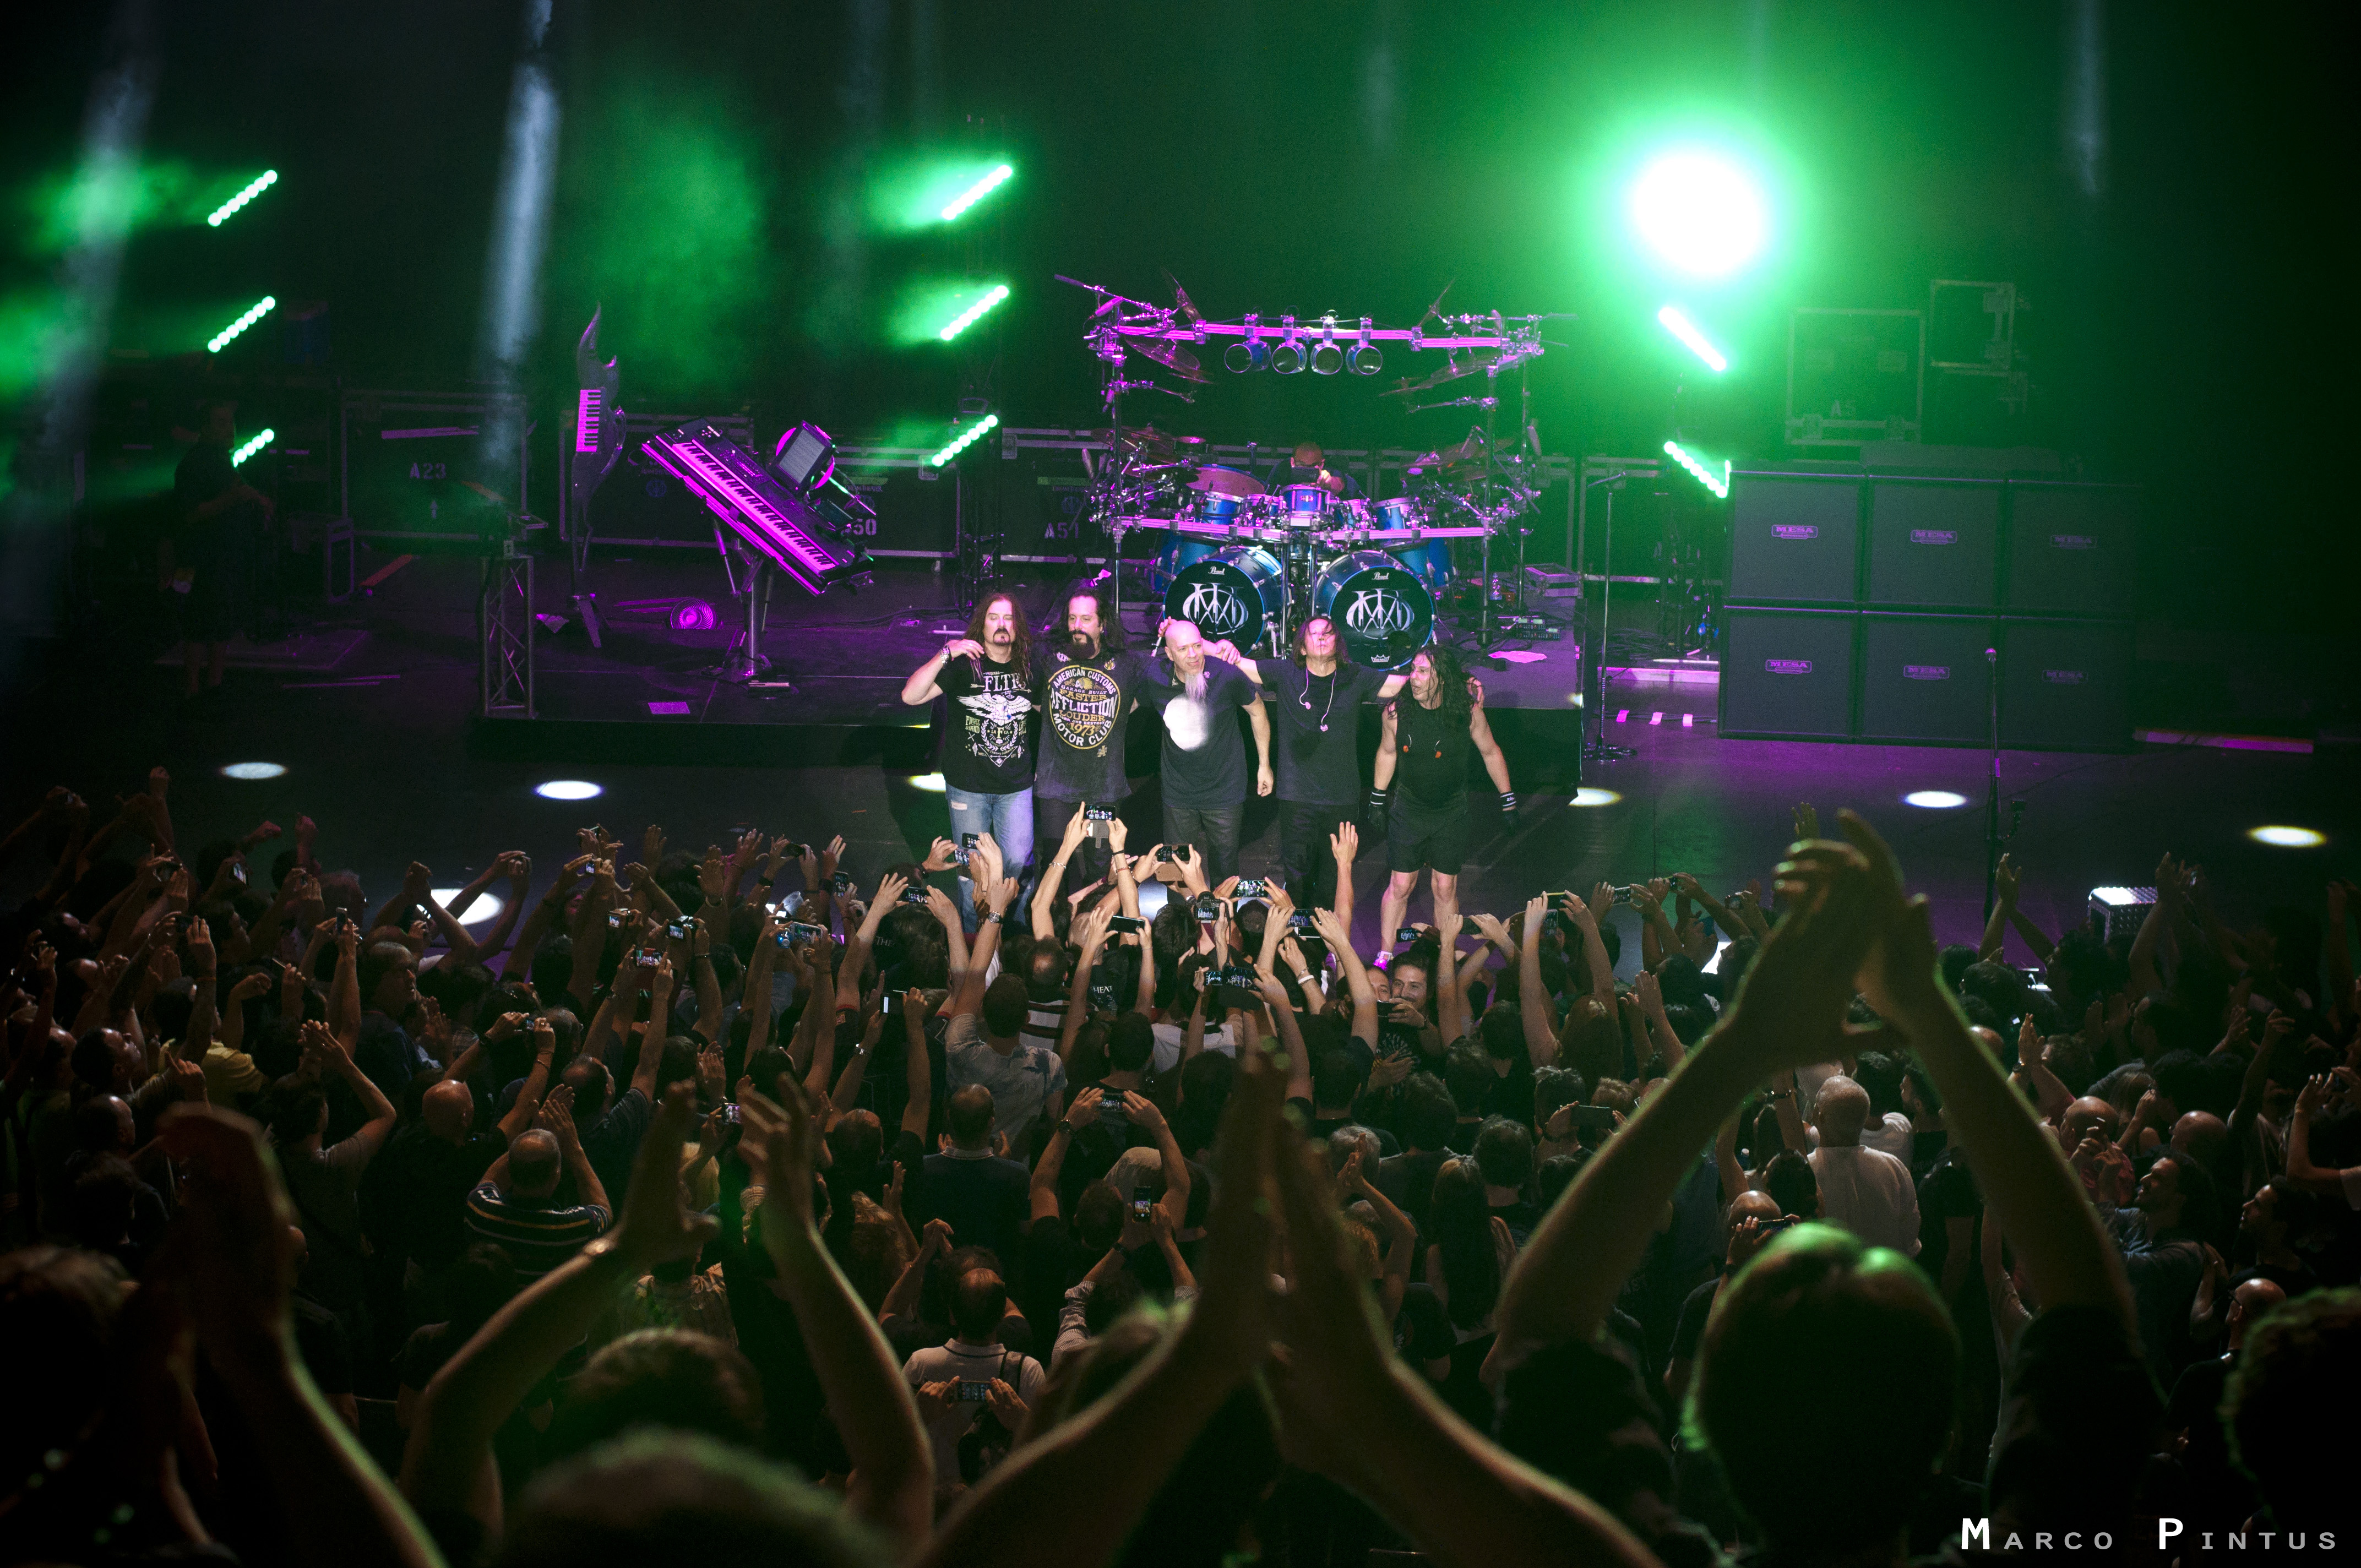 Dream Theater + Evergrey + Virtual Symmetry @ Auditorium - 01 07 2015